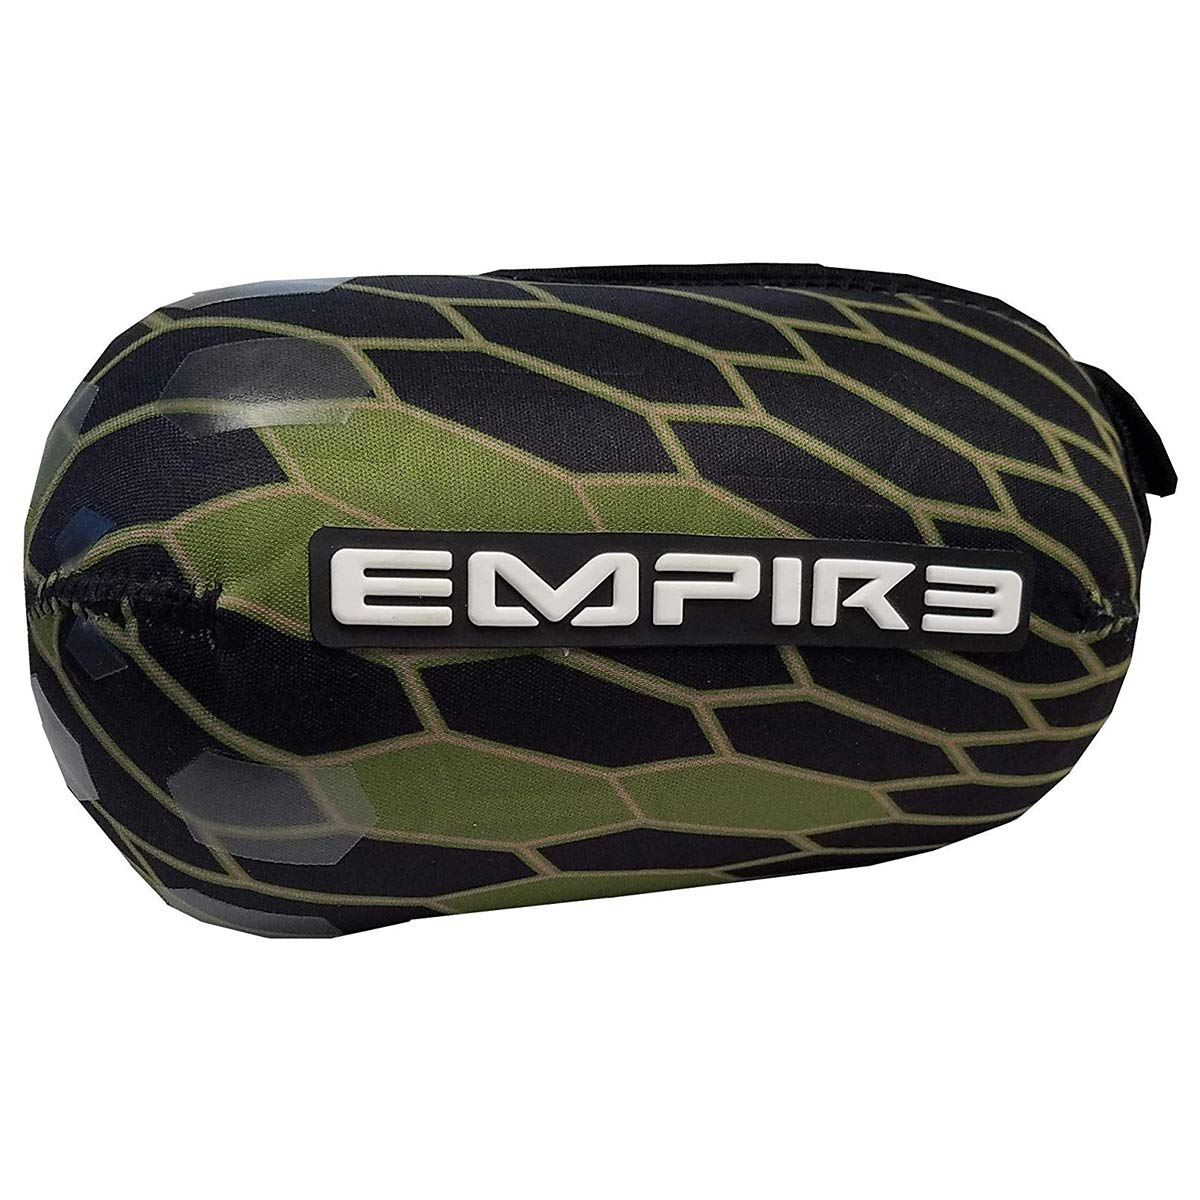 Empire Bottle Glove F9 (80/90ci, Green/Black) by Empire